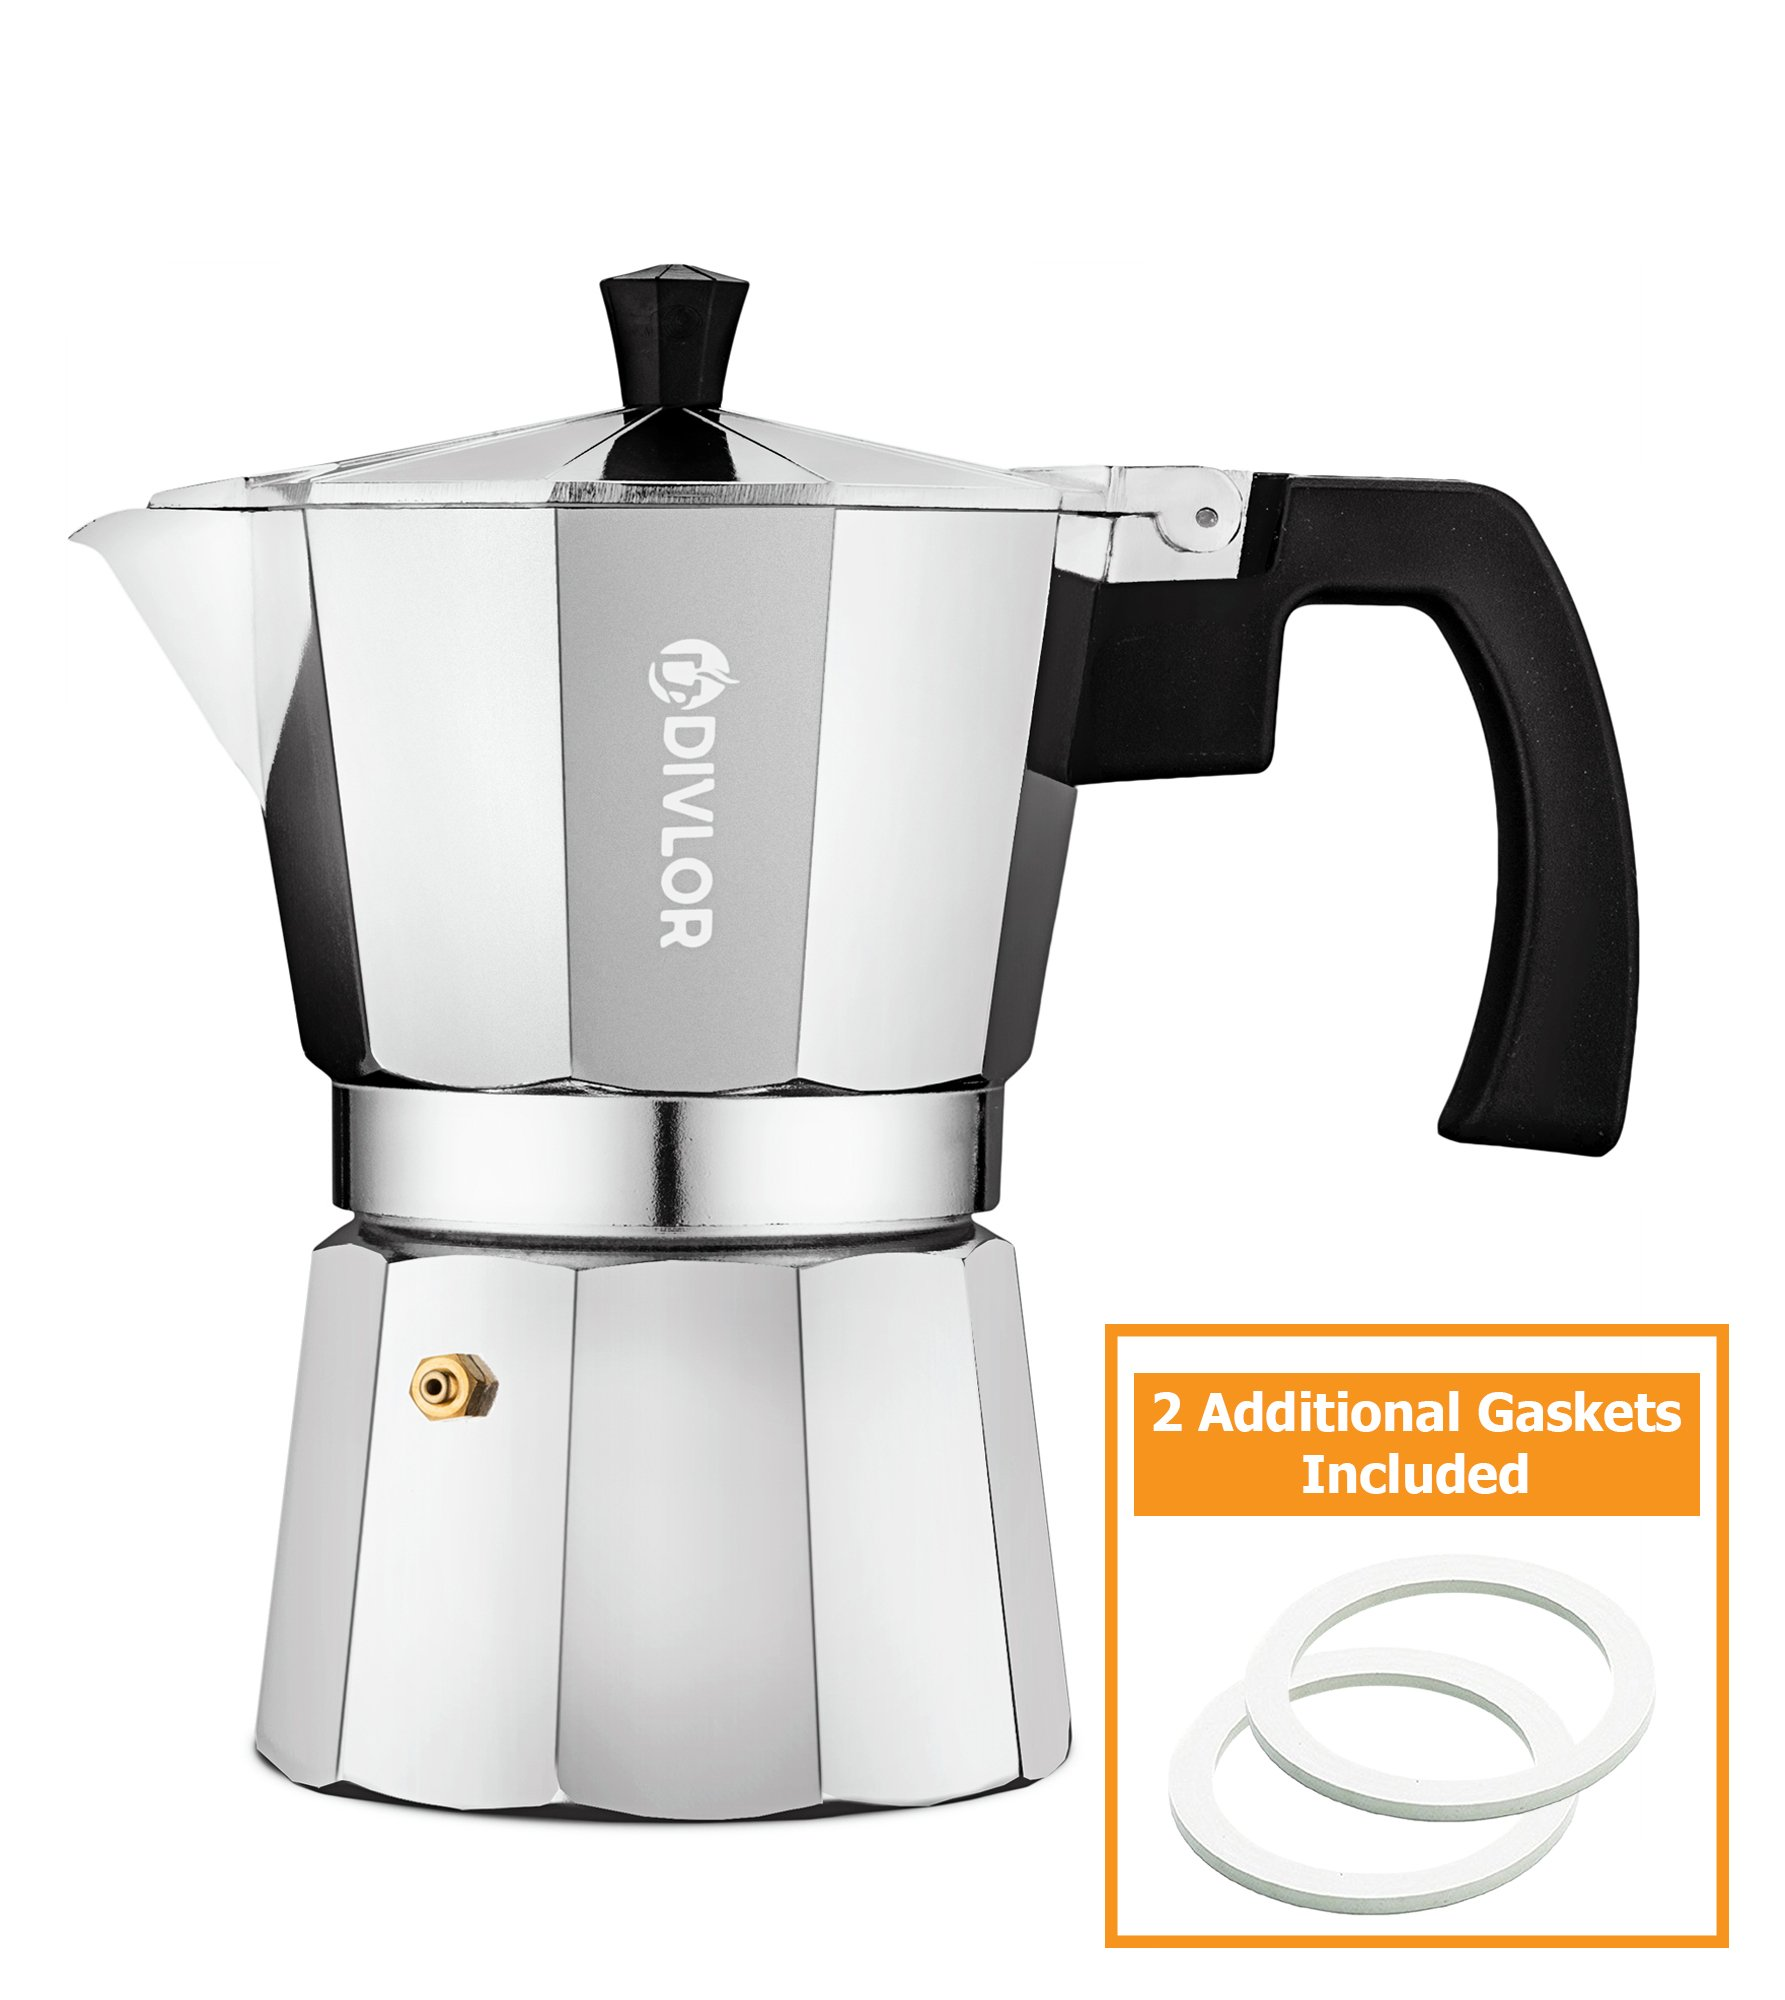 Stovetop Espresso Maker - Moka Pot, Aluminum Espresso Machine, 3 Cup, 2 Extra Gaskets Included, By Divlor